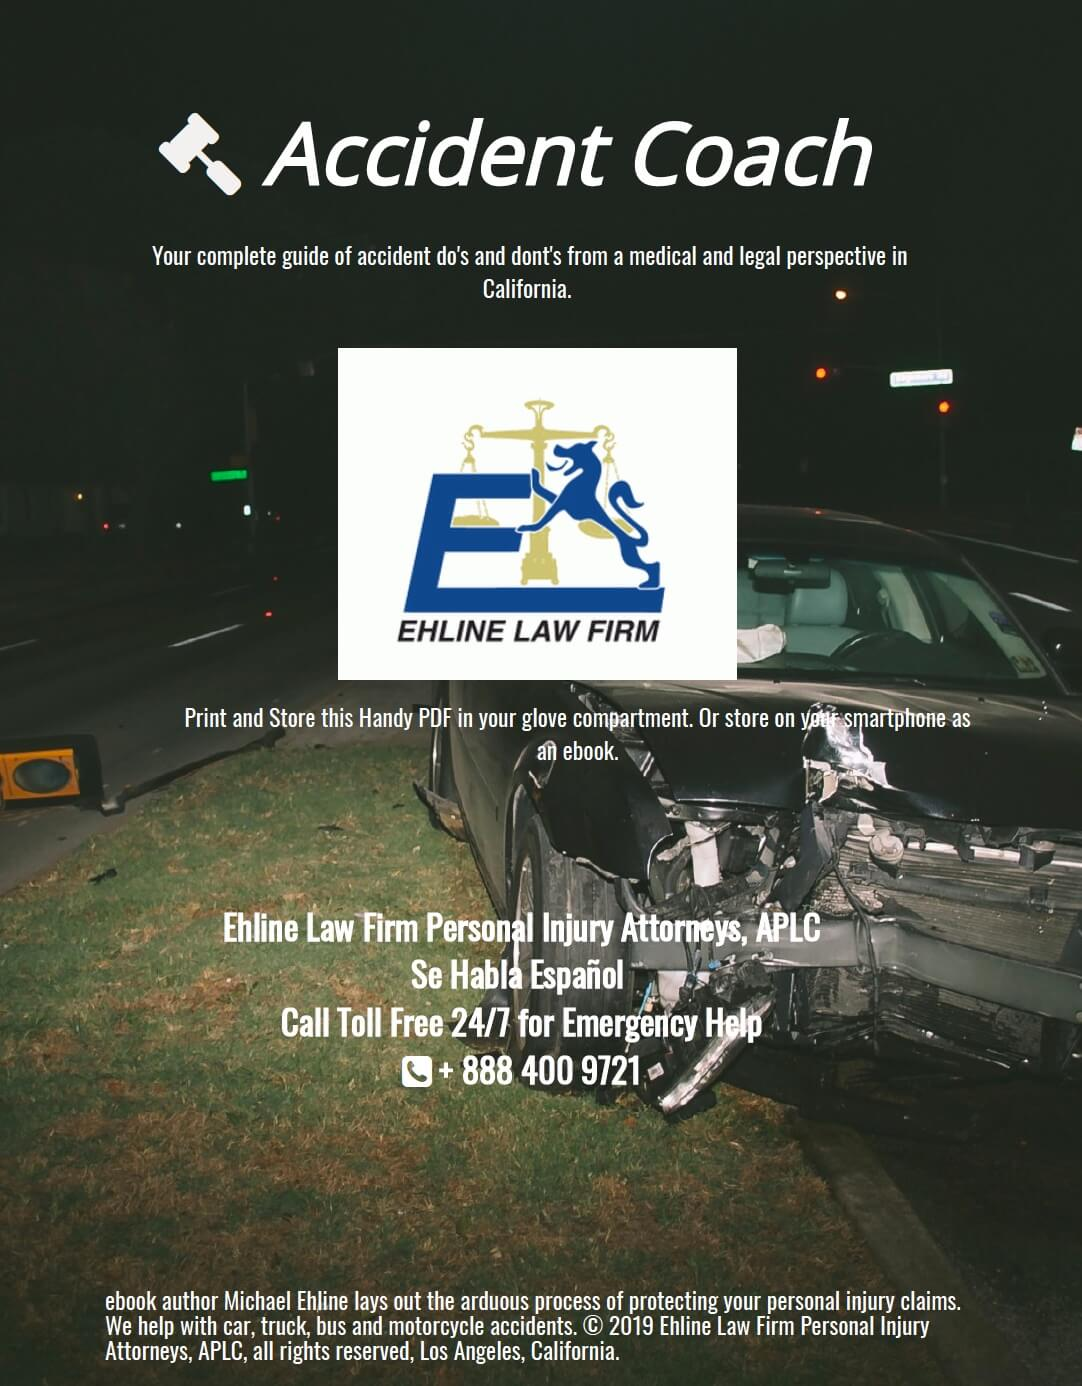 Learn from the Car Accident Coach, Michael Ehline and stay safe and solvent financially after a car wreck by clicking here.